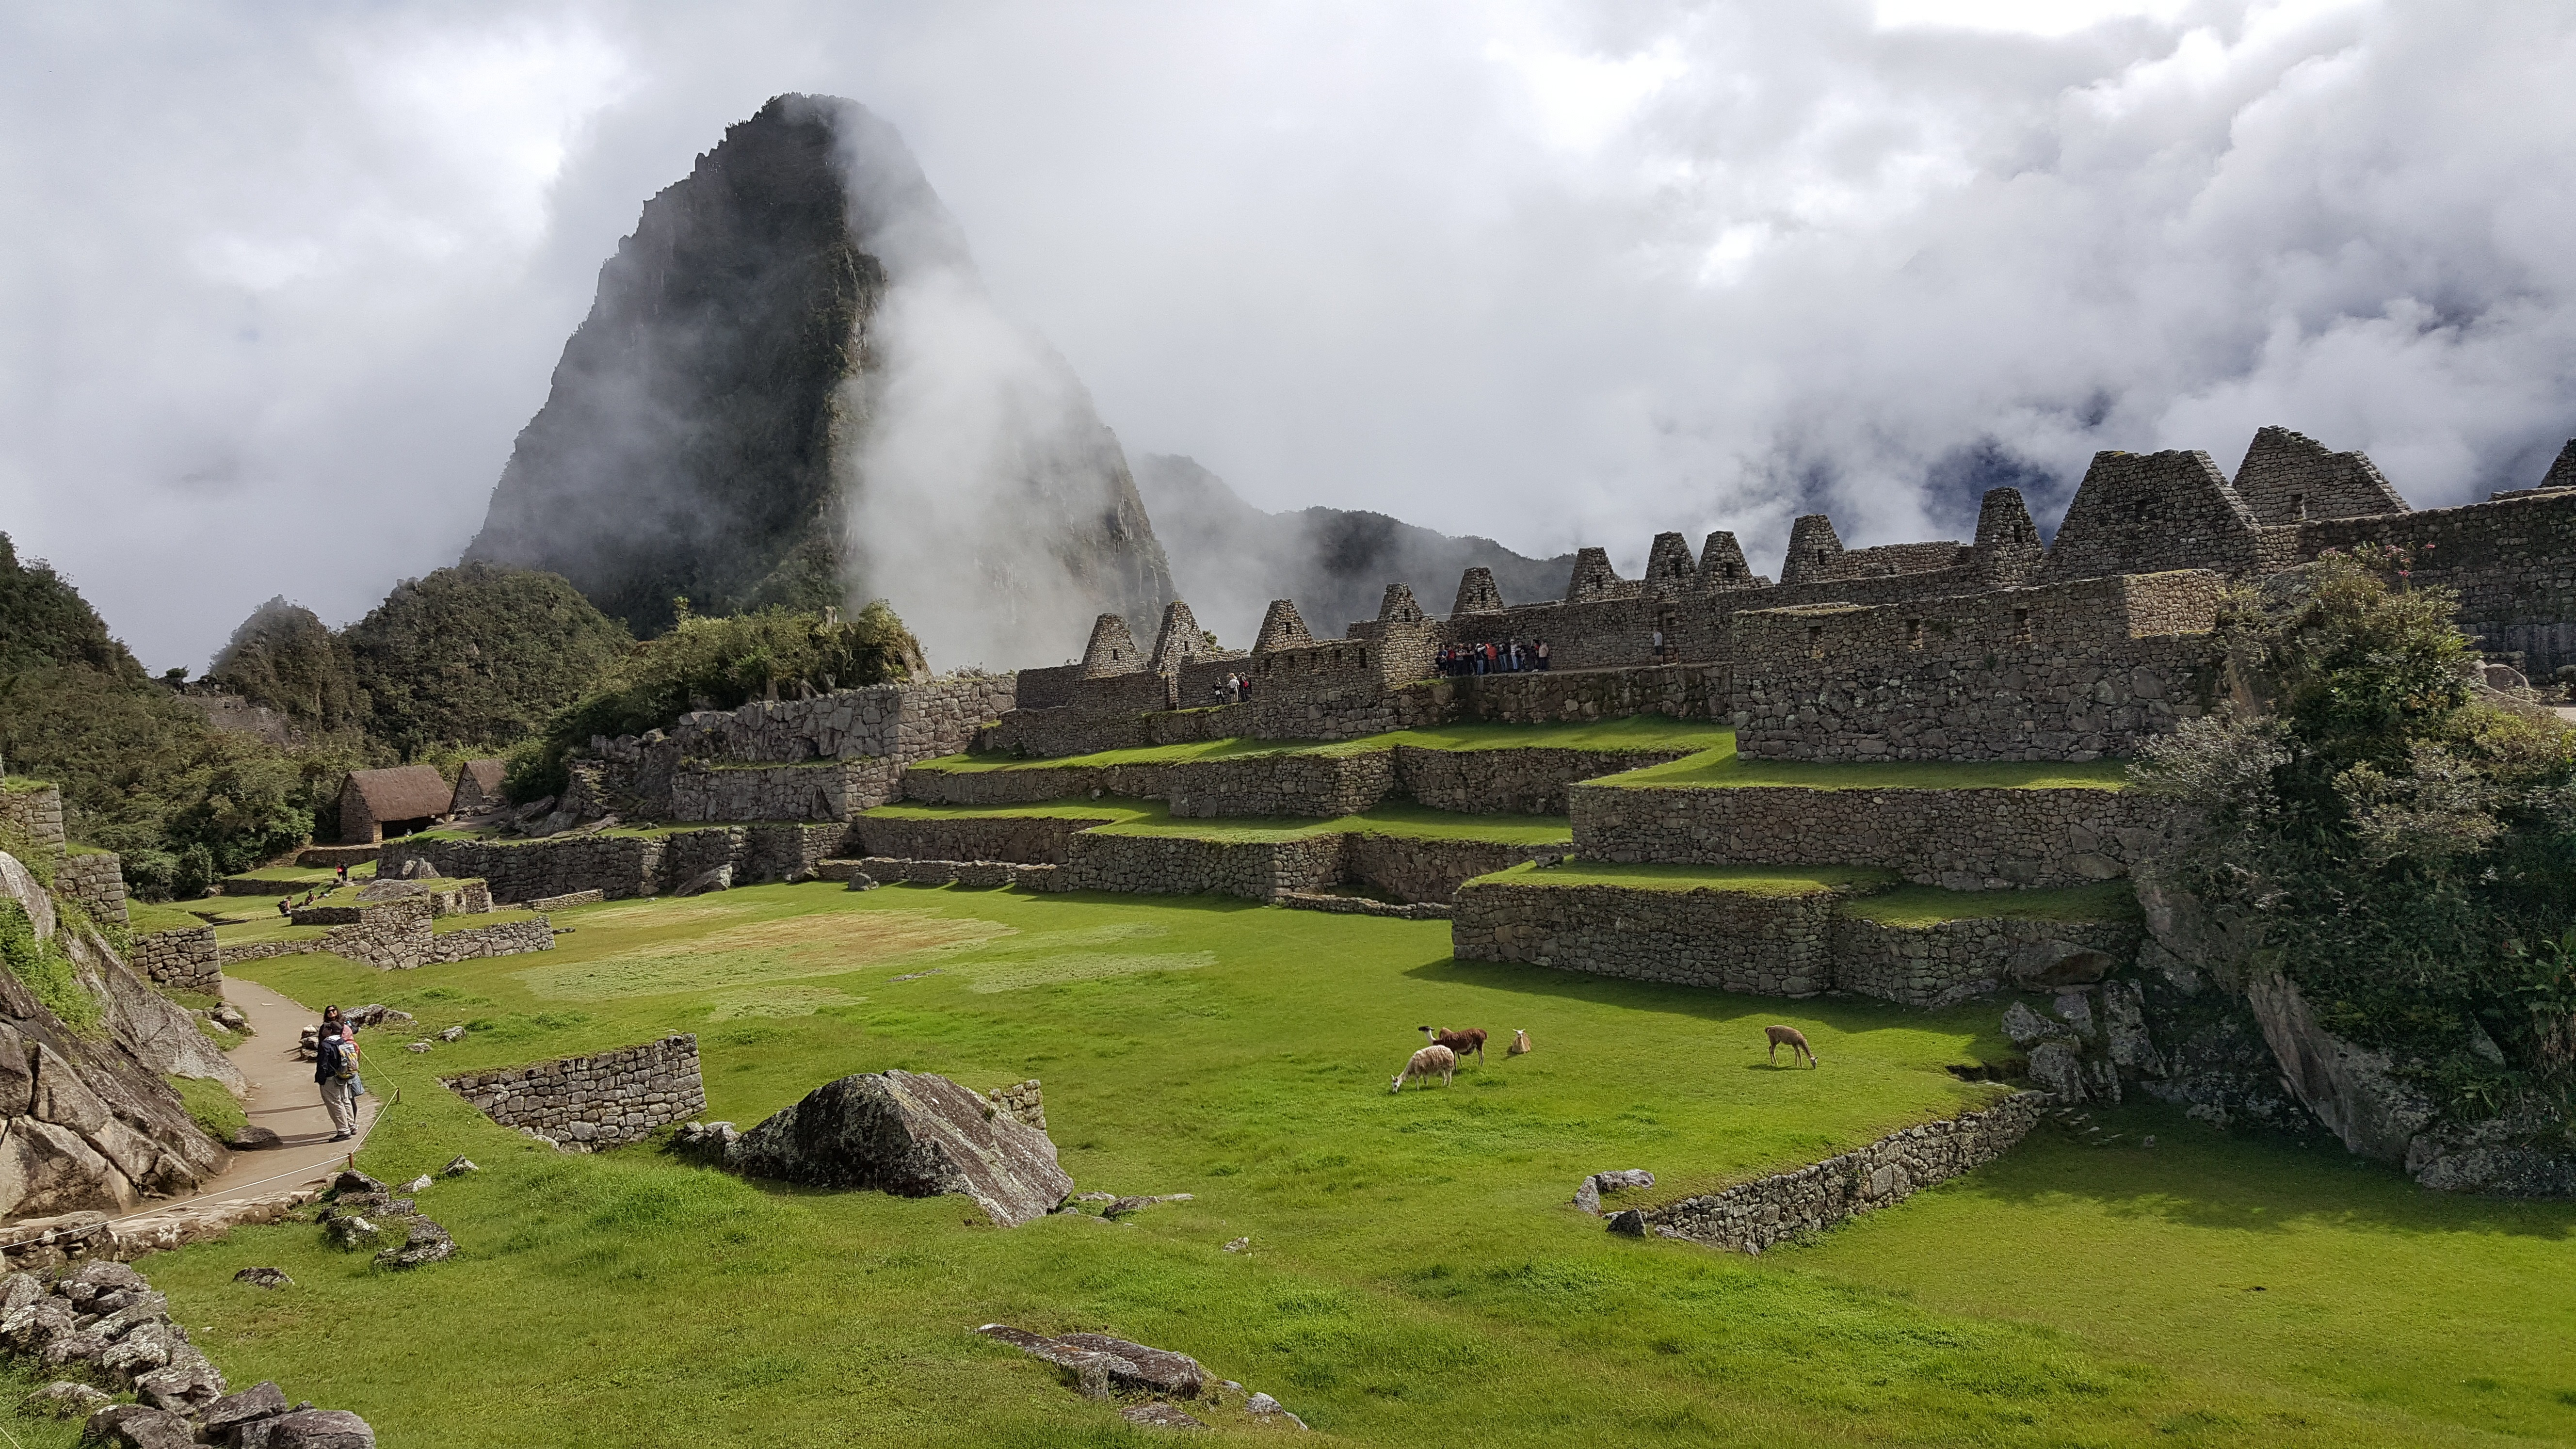 Free download high resolution image - free image free photo free stock image public domain picture -Machu Picchu Peru, Southa America, a UNESCO World Heritage Site